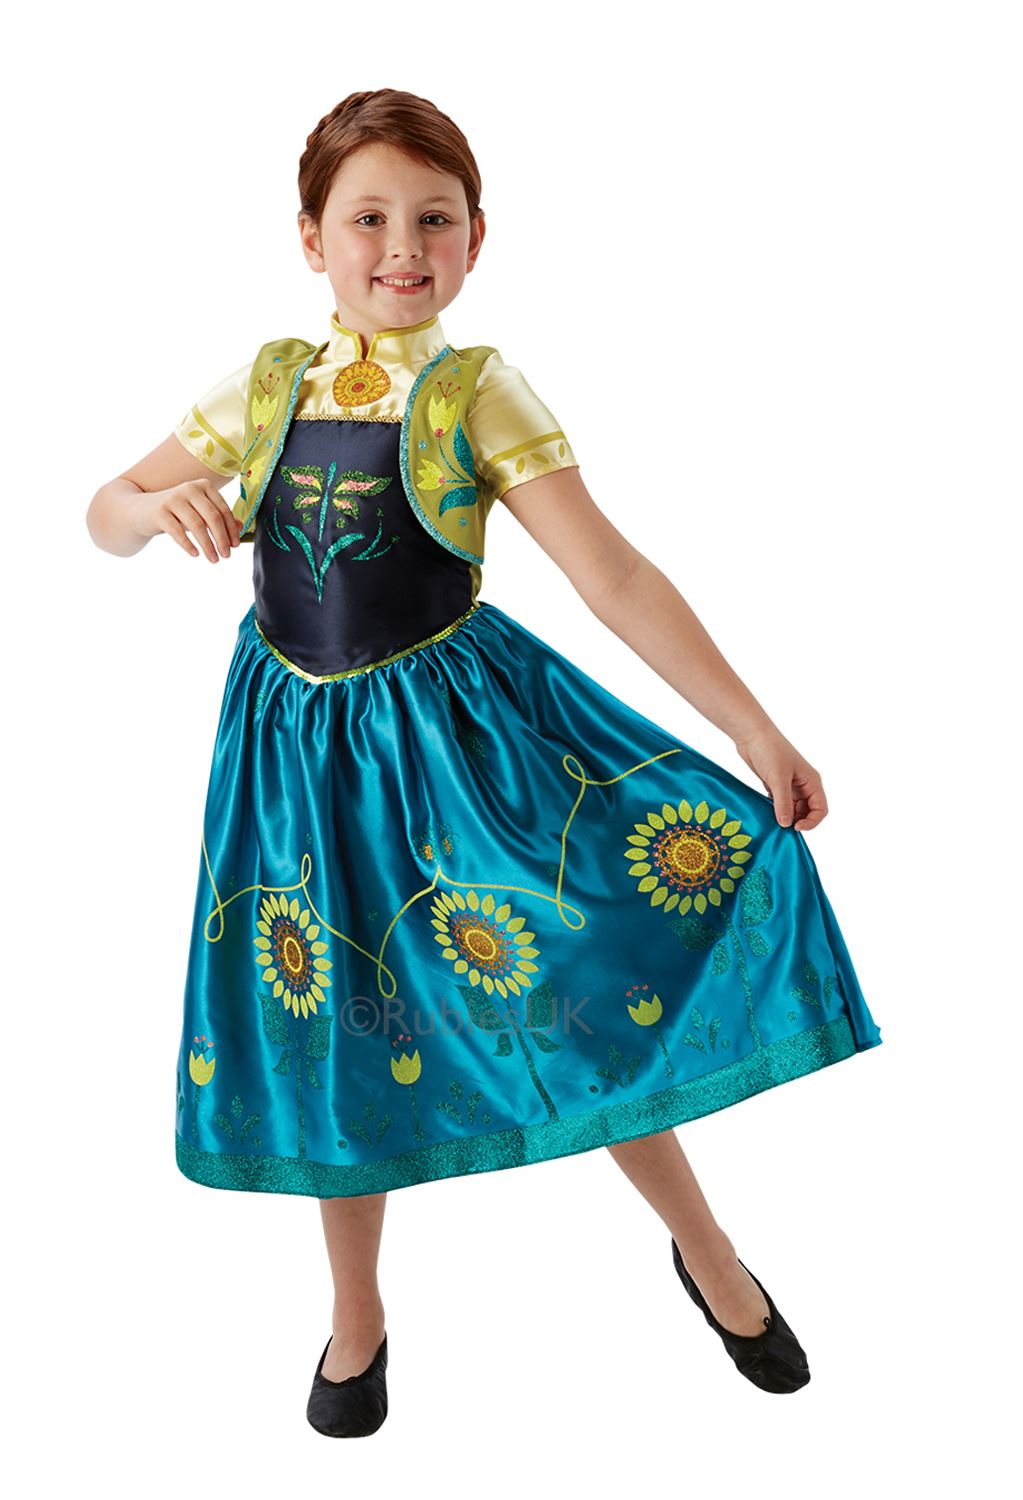 Find great deals on eBay for frozen costume. Shop with confidence.